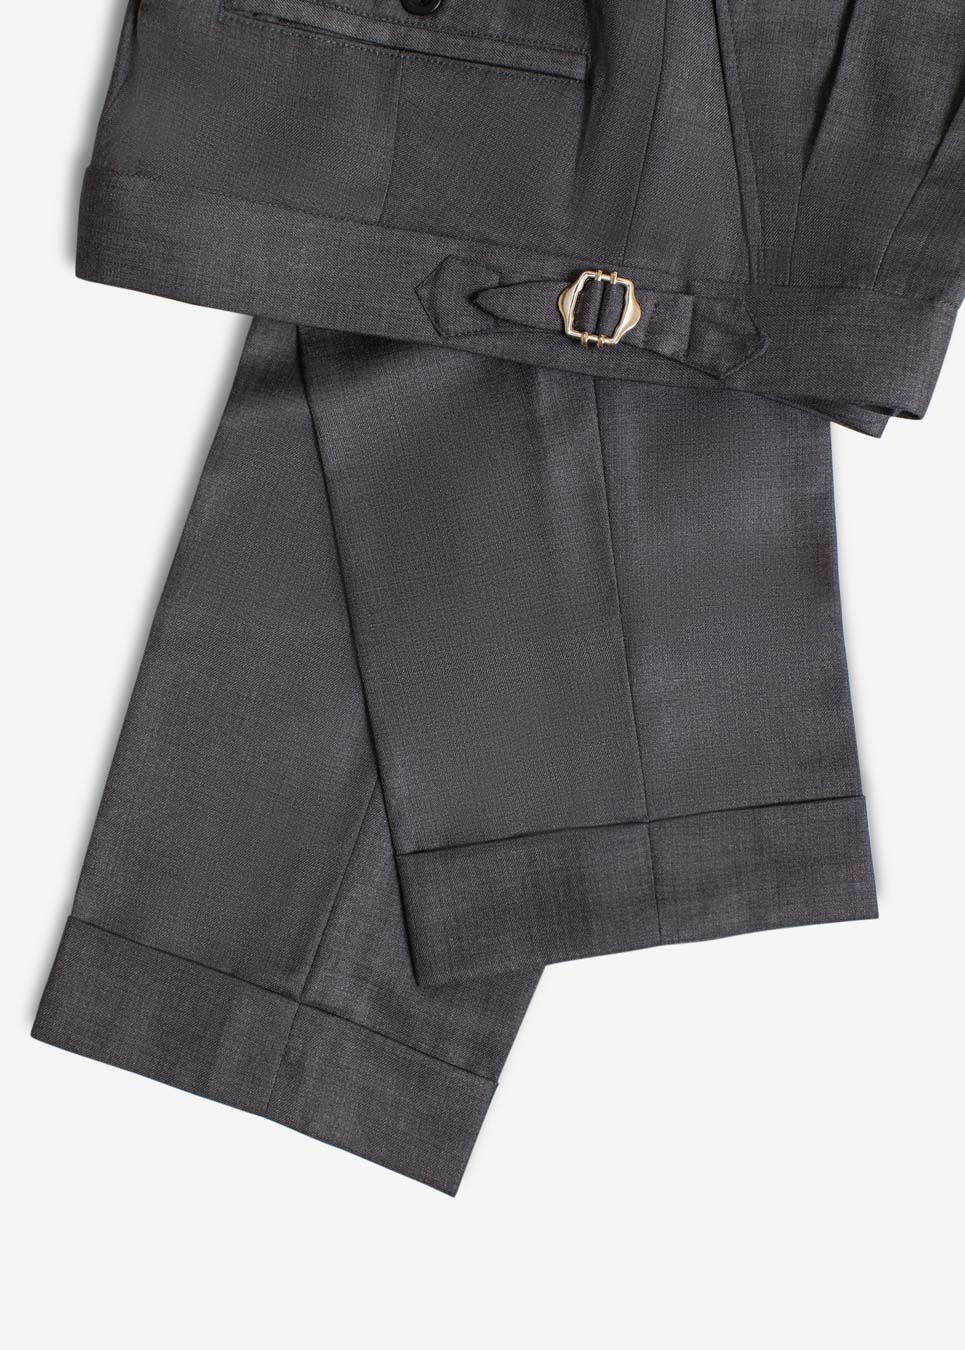 Rags And Lace Wool Pants (Graphite)